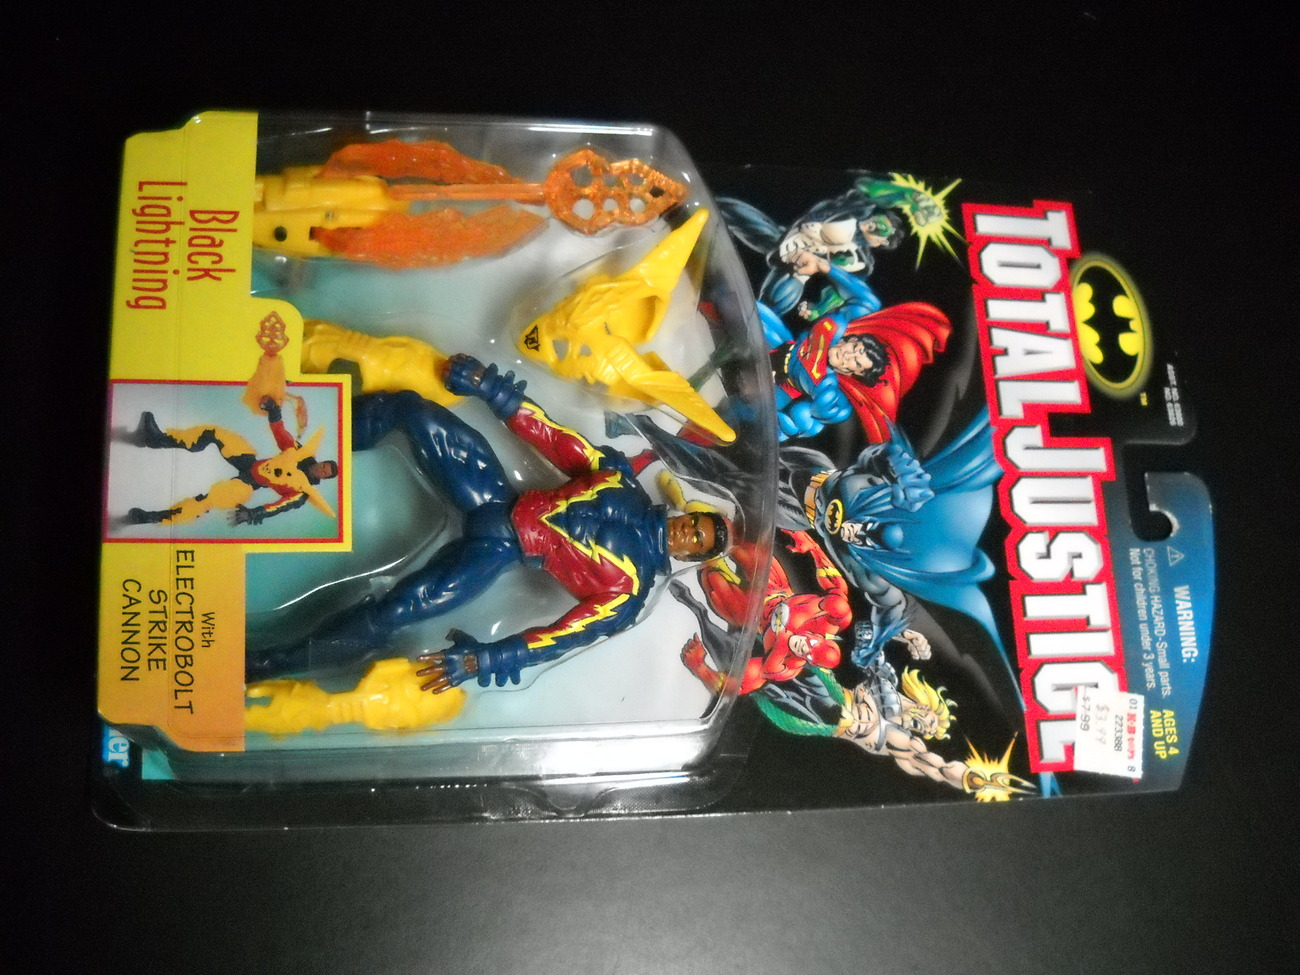 Toy justice league kenner hasbro 1997 total justice black lightning moc 02